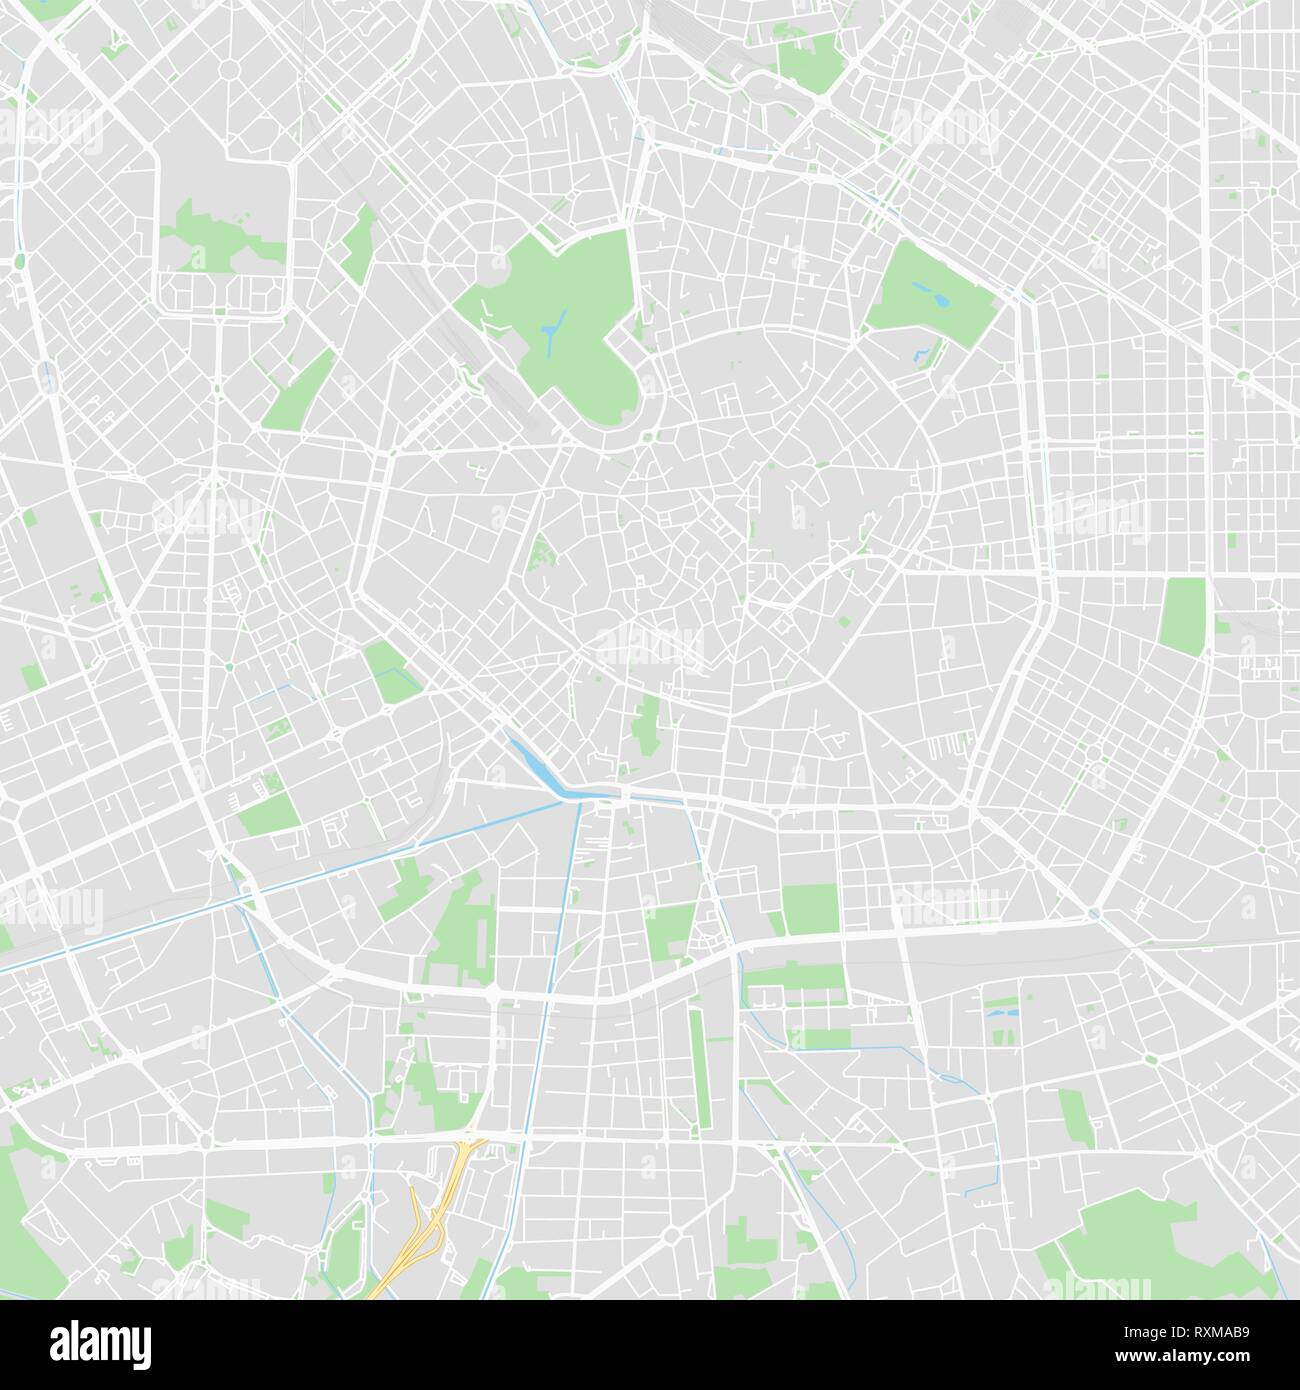 Downtown vector map of Milan, Italy. This printable map of Milan contains lines and classic colored shapes for land mass, parks, water, major and mino - Stock Vector